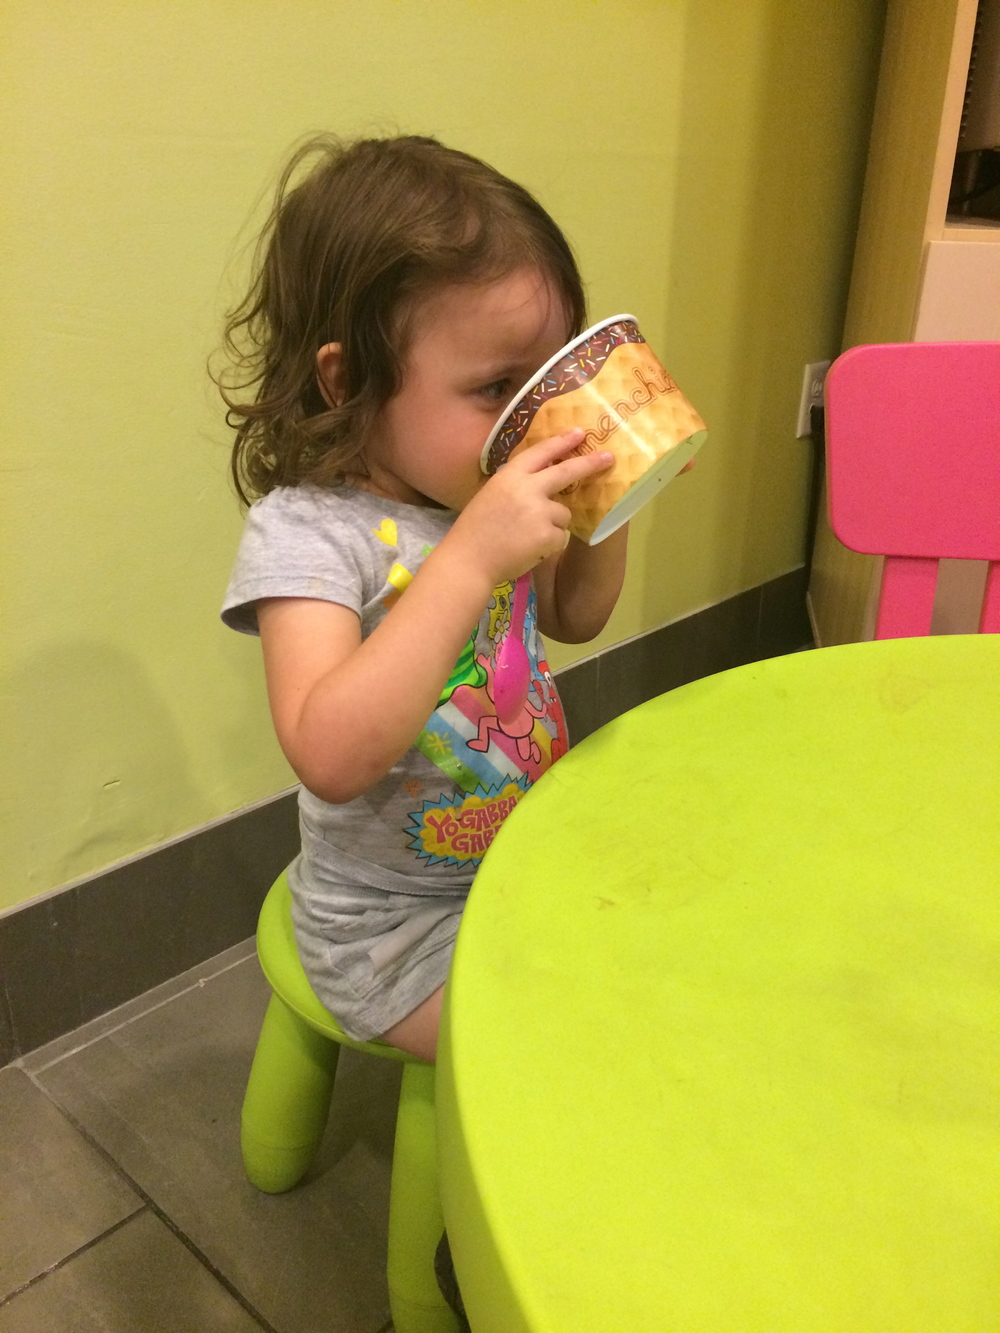 Are you saying there's a better way to eat FroYo?